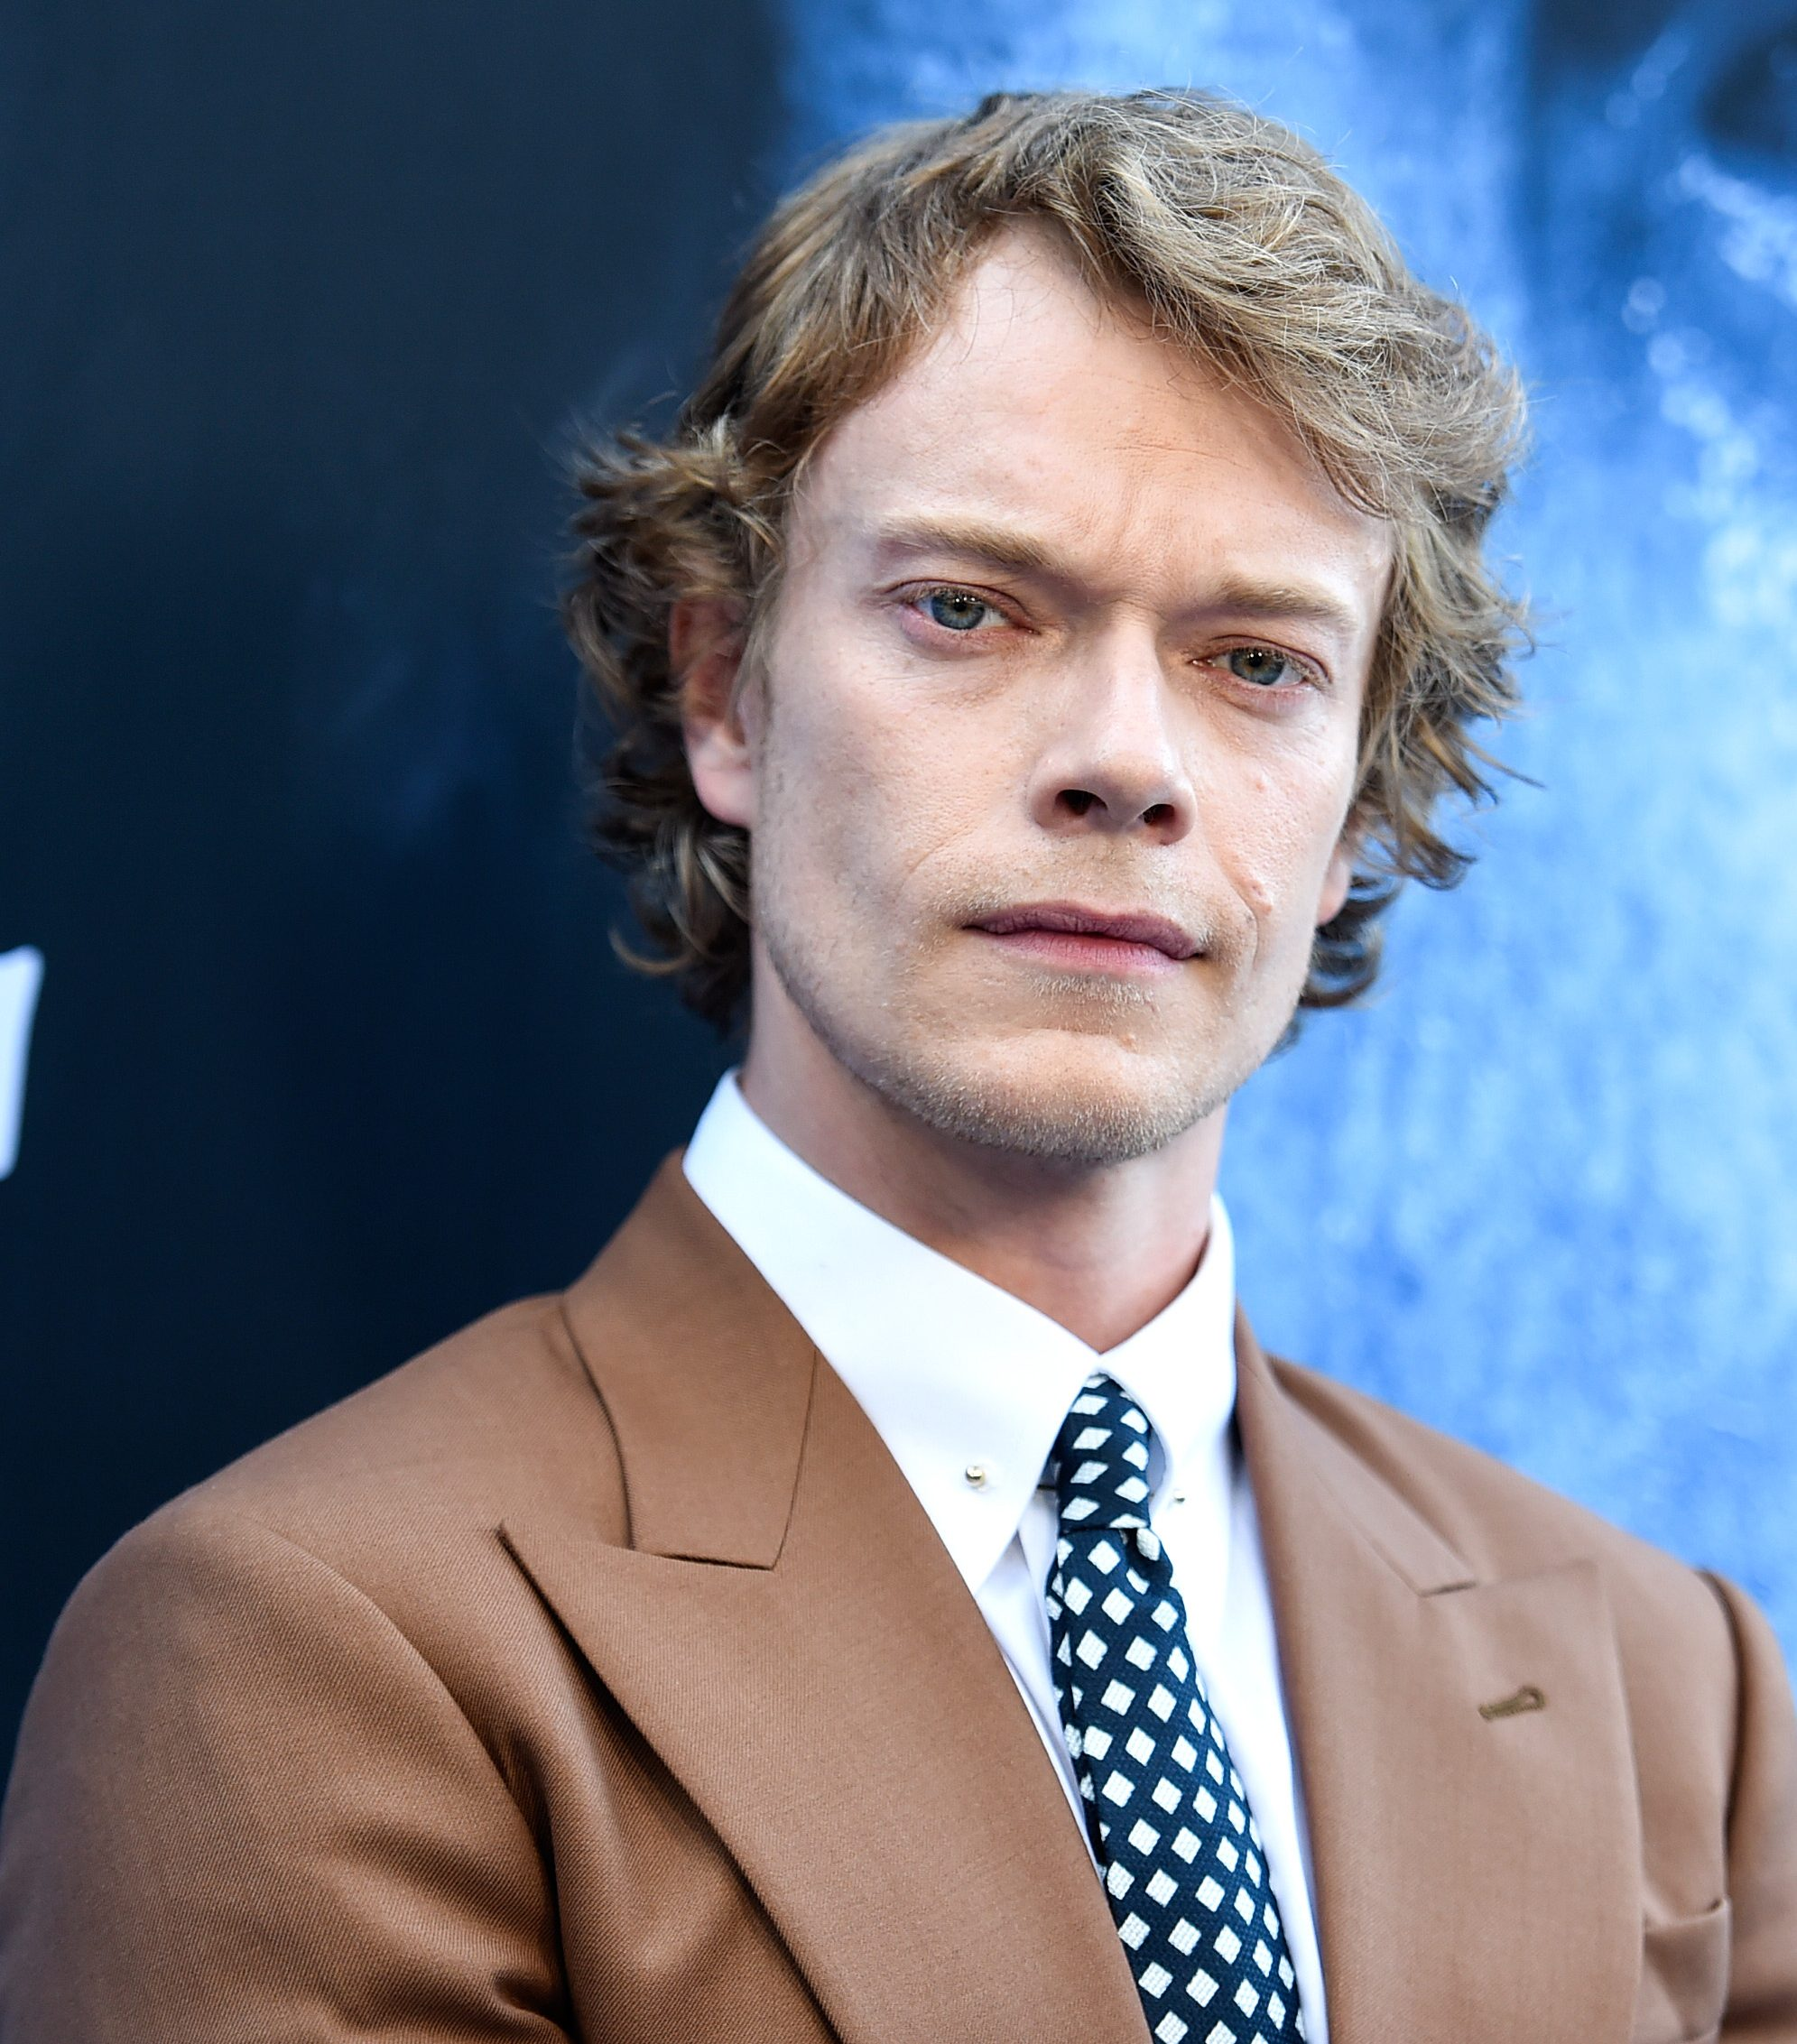 alfie allen 2 e1594641934948 20 Pairs Of Celebrities You Never Knew Were Related!